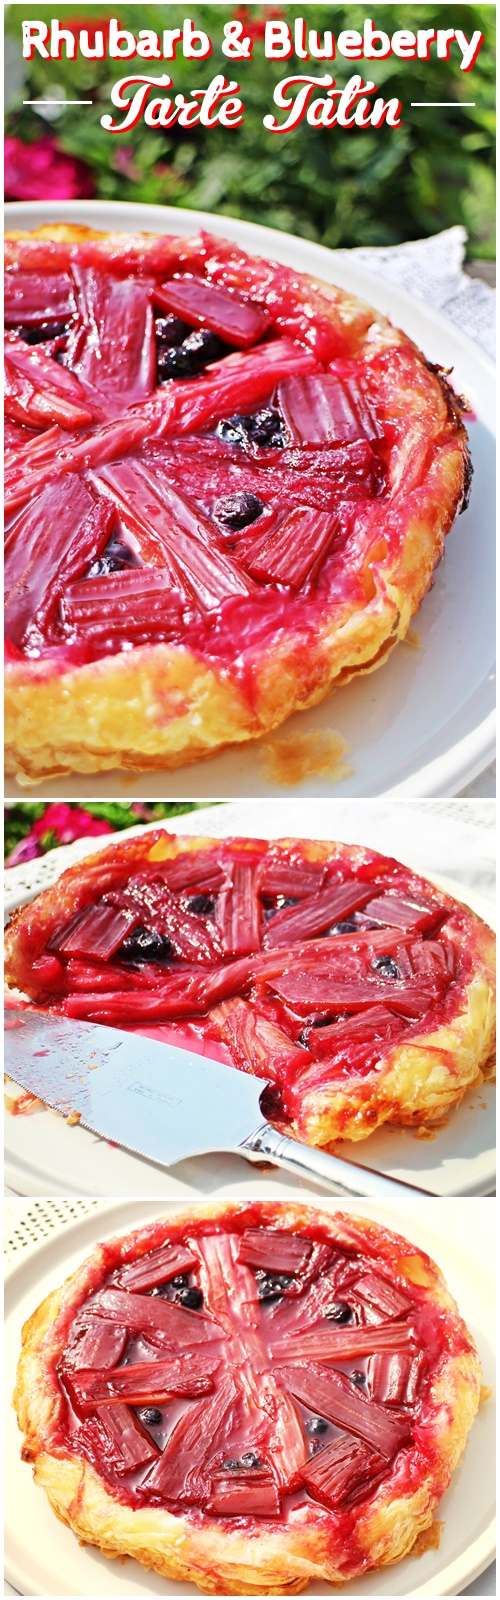 Rhubarb & Blueberry Tarte Tatin - Fab Food 4 All